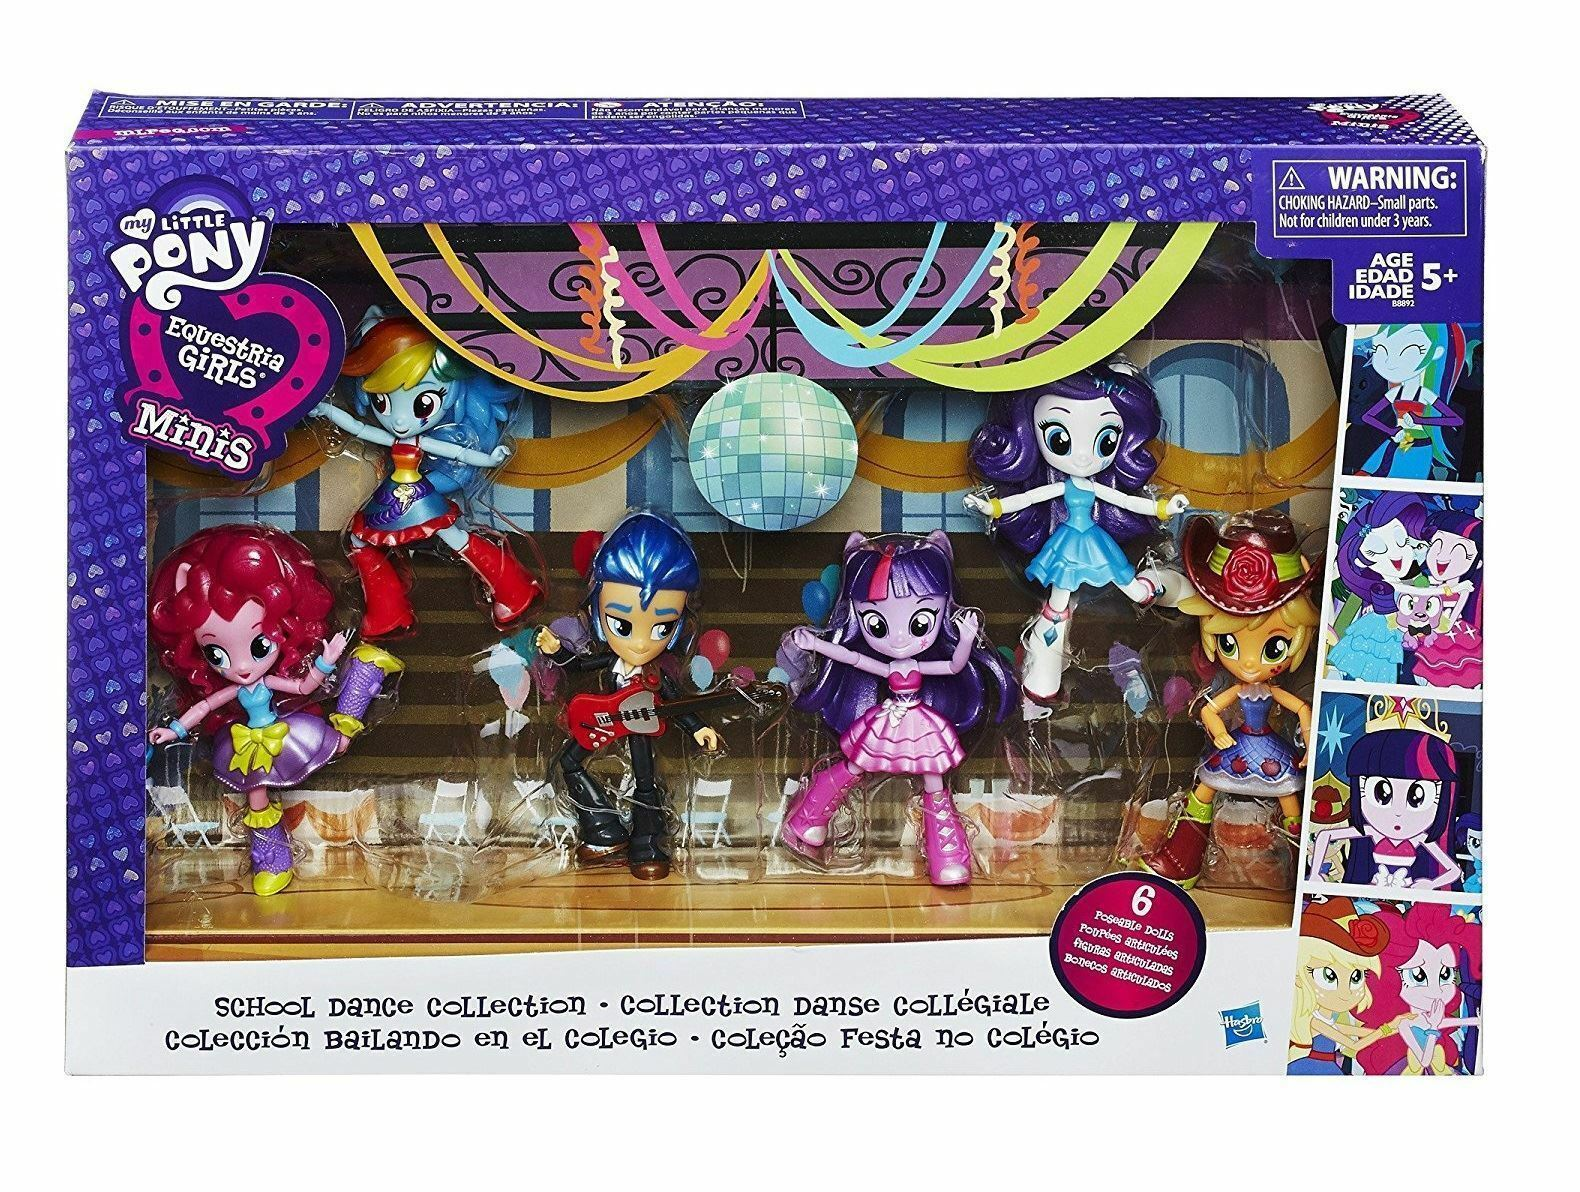 My Little Pony Equestria Girls Dolls Minis School Dance Collection Playset MLP